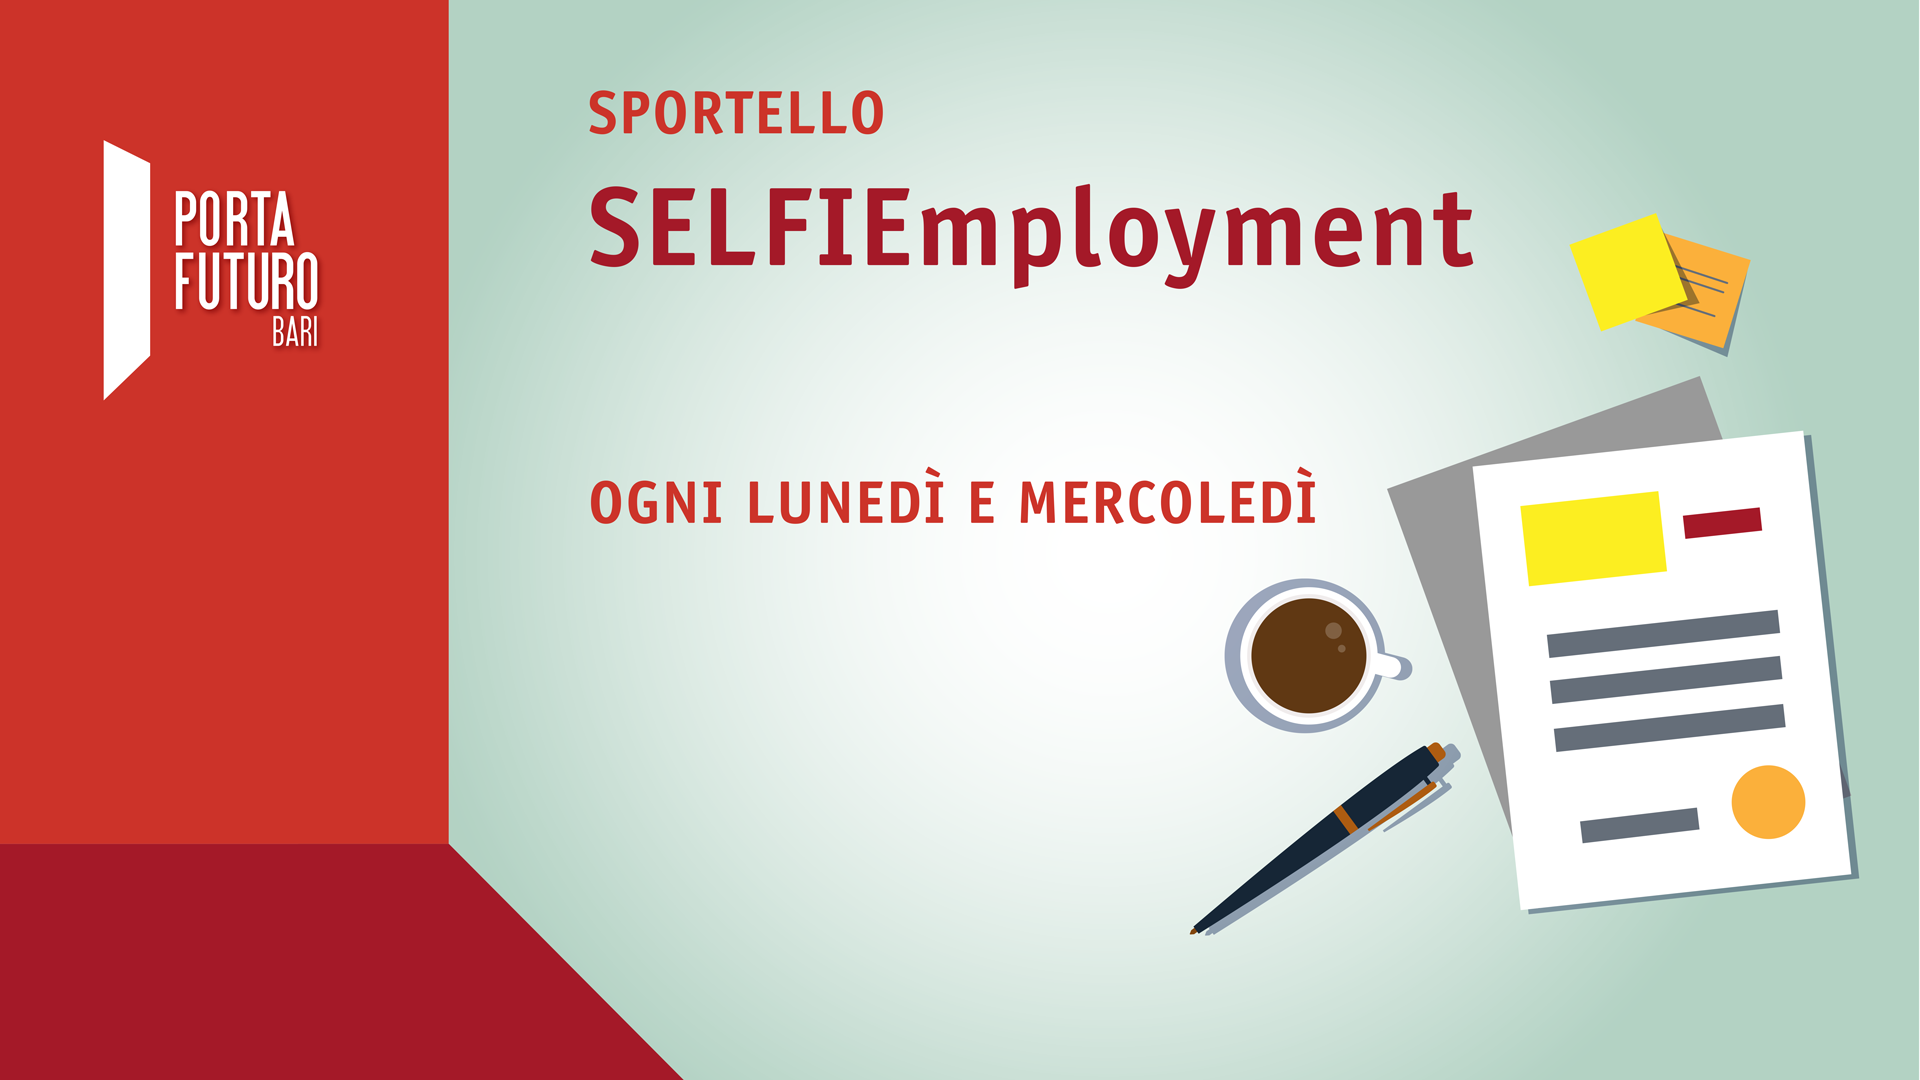 Sportello Selfiemployement